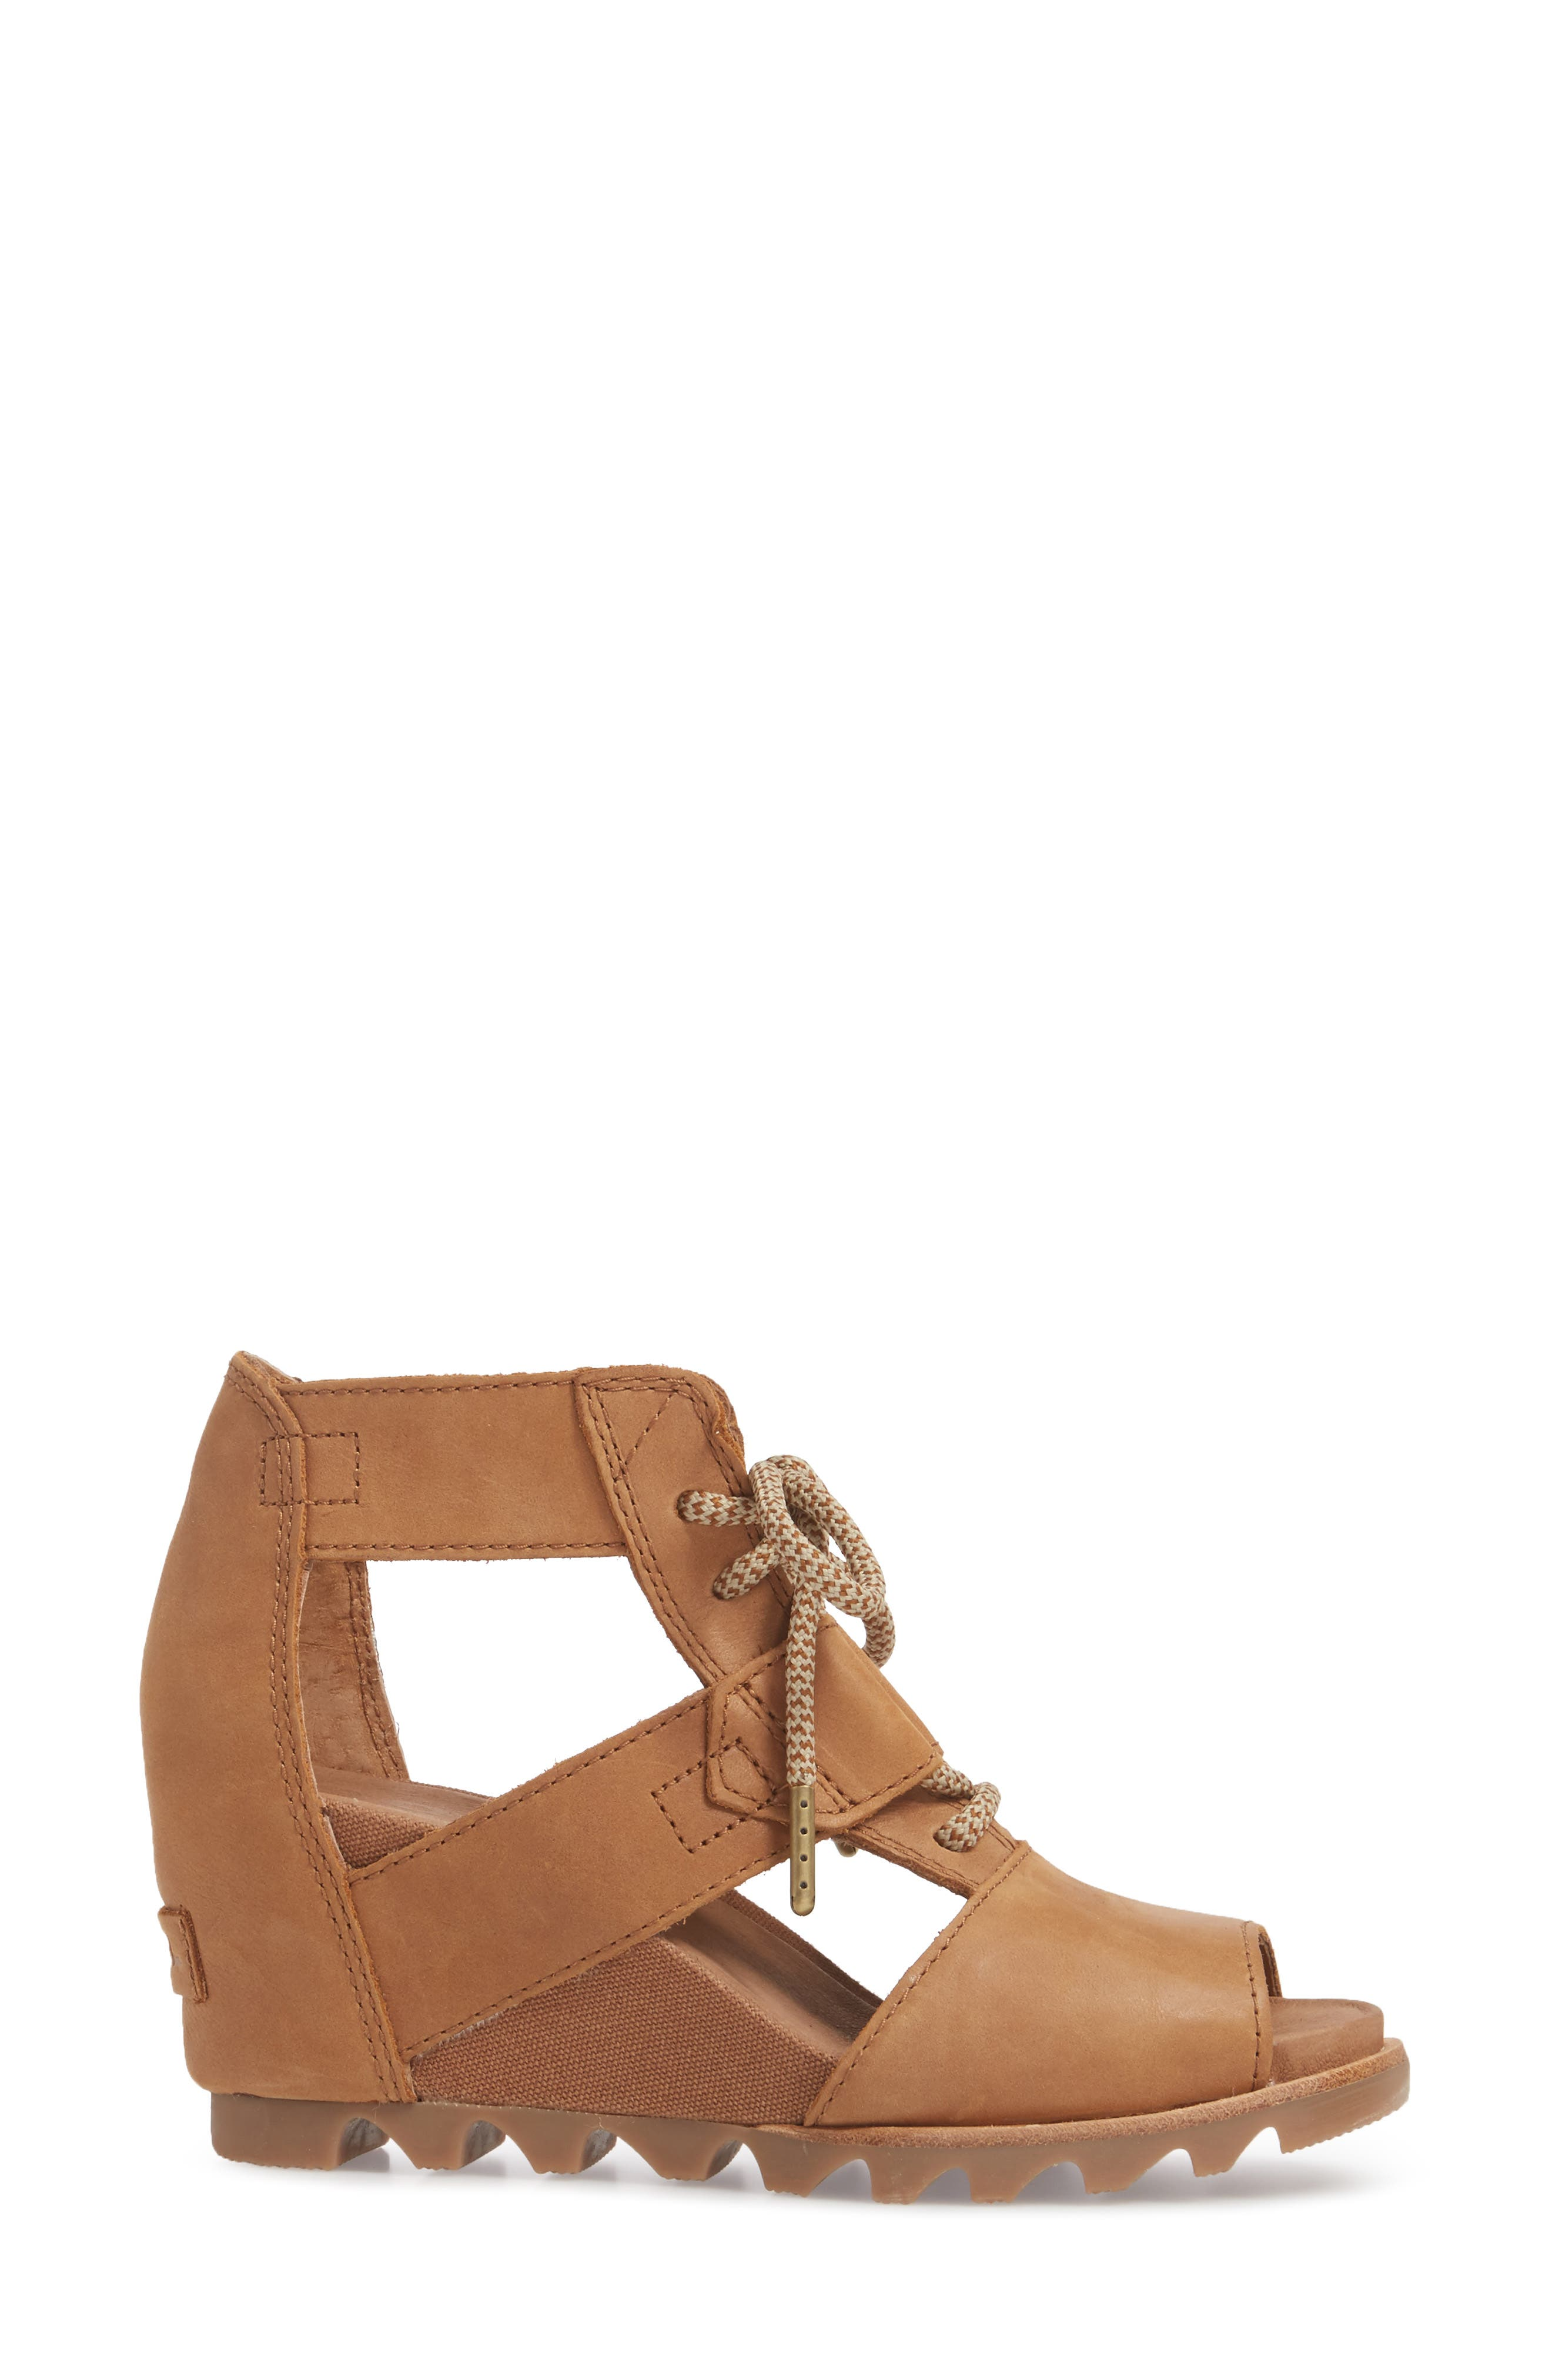 'Joanie' Cage Sandal,                             Alternate thumbnail 5, color,                             Camel Brown